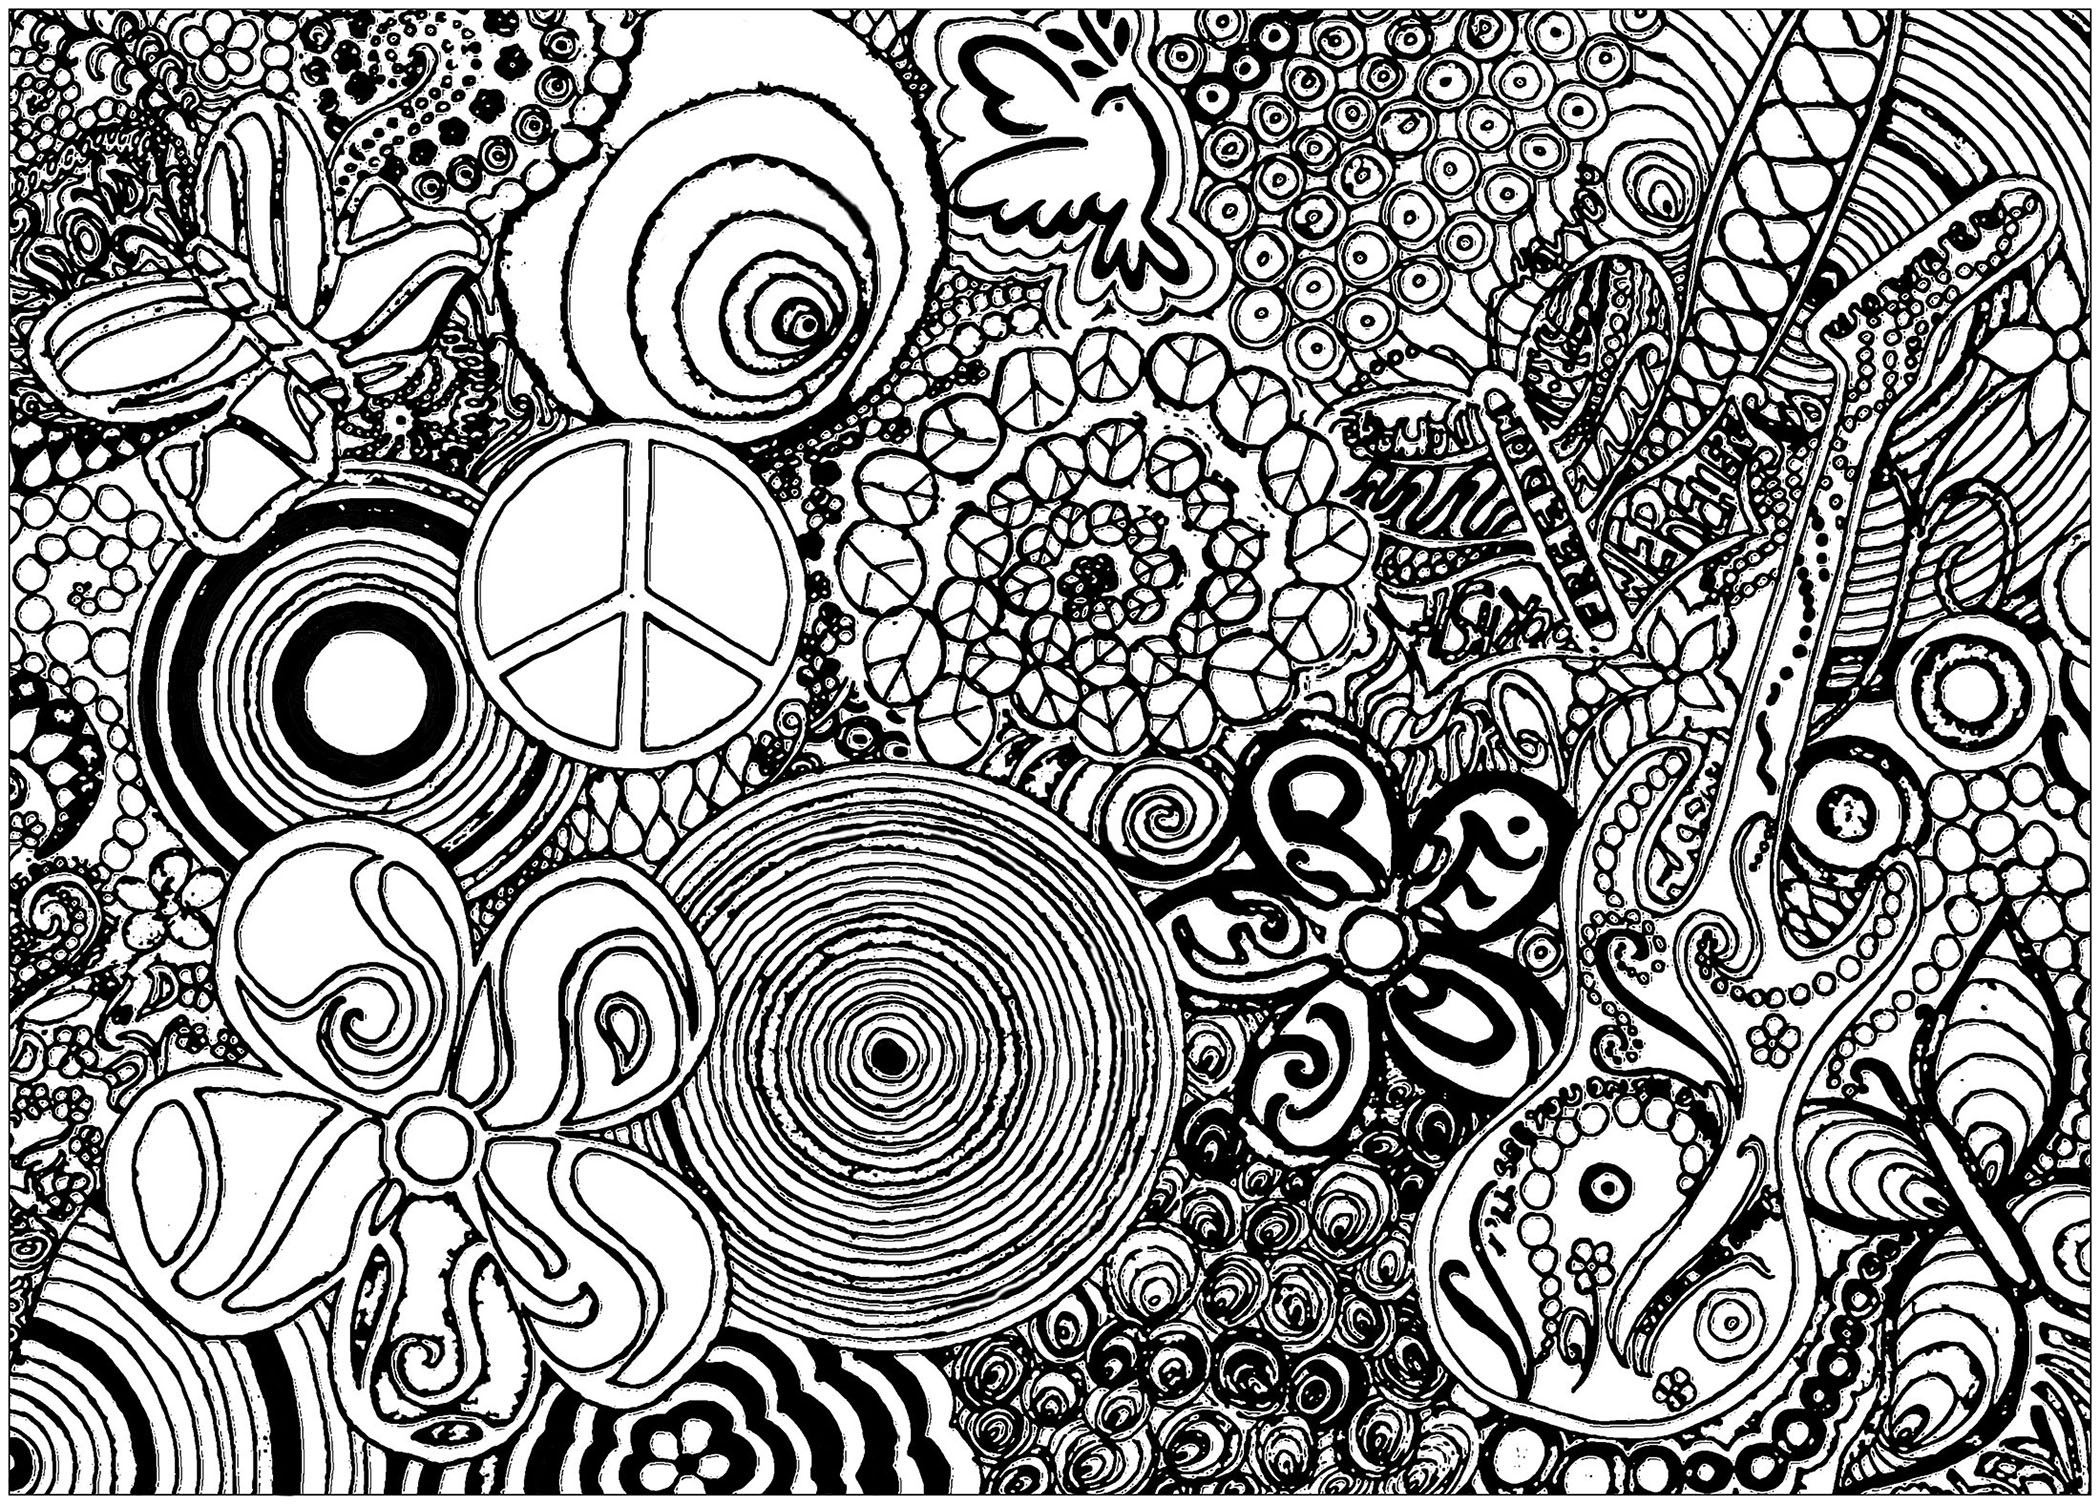 Music - Coloring Pages for Adults